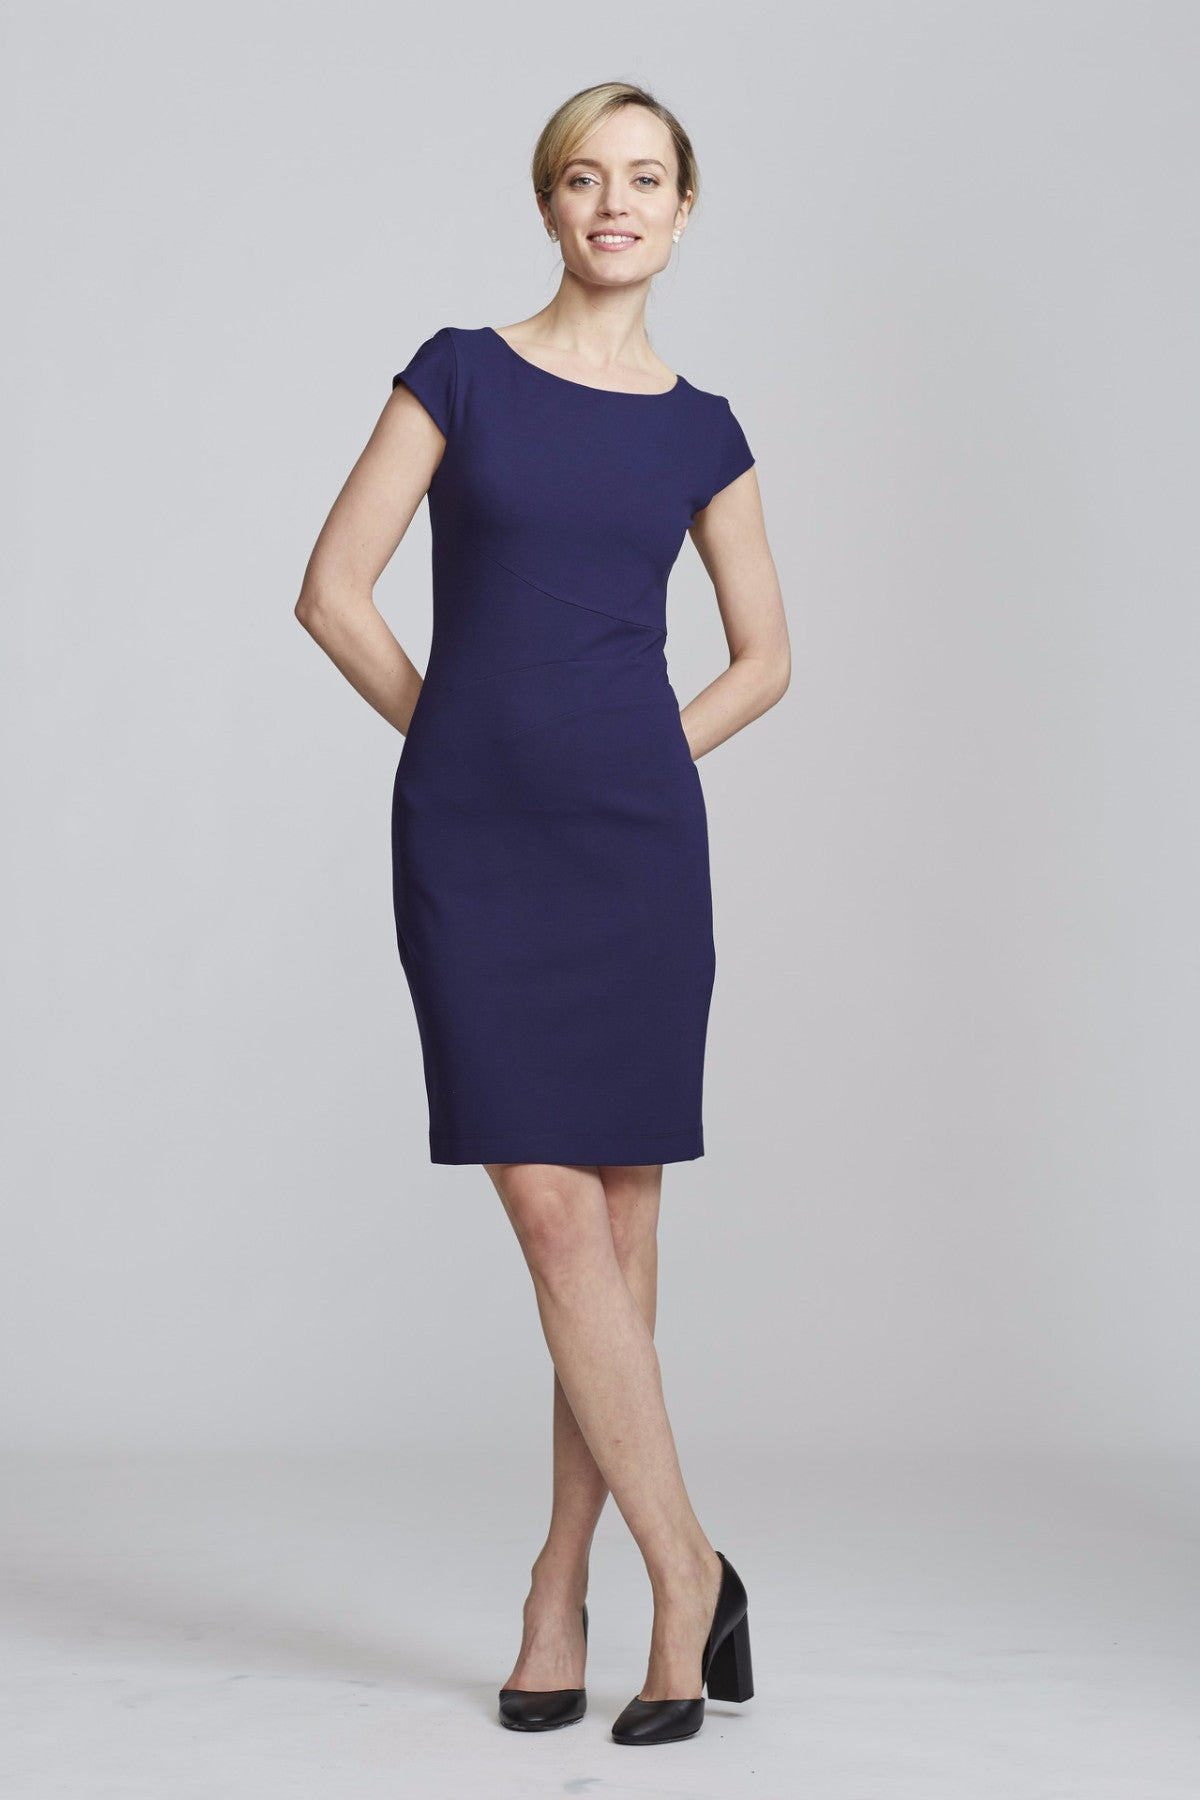 Women's Verana Dress in Navy | Nora Gardner